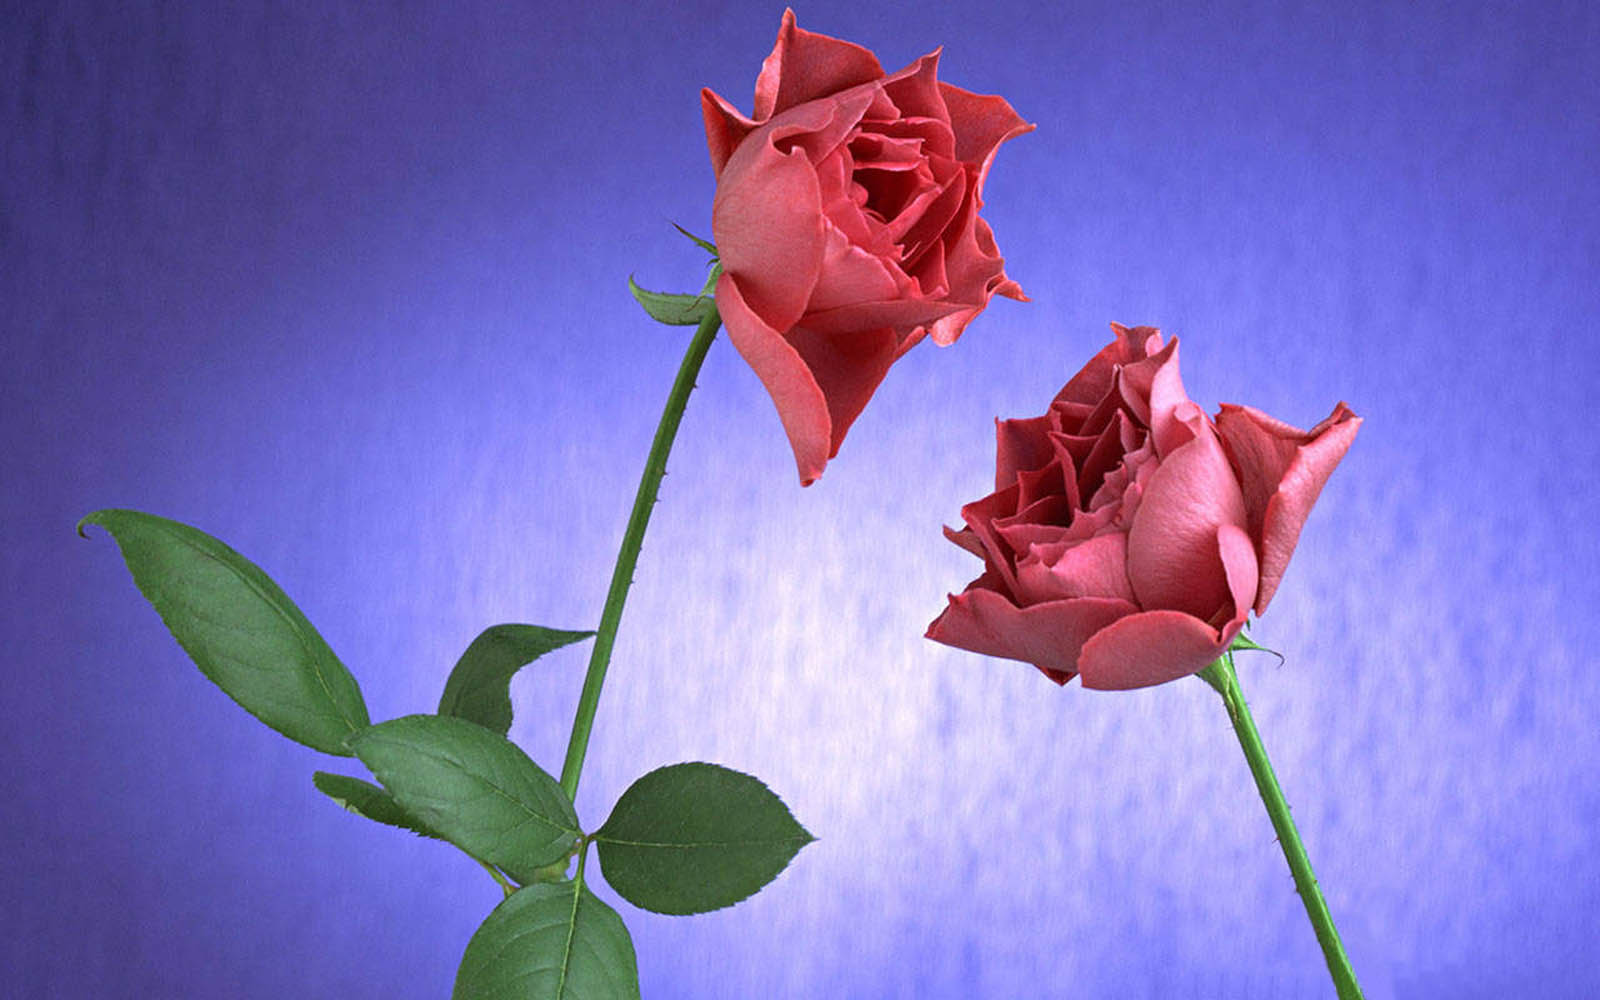 Gallery mangklex hot 2013 rose flowers wallpapers - Rose flowers wallpaper for mobile ...